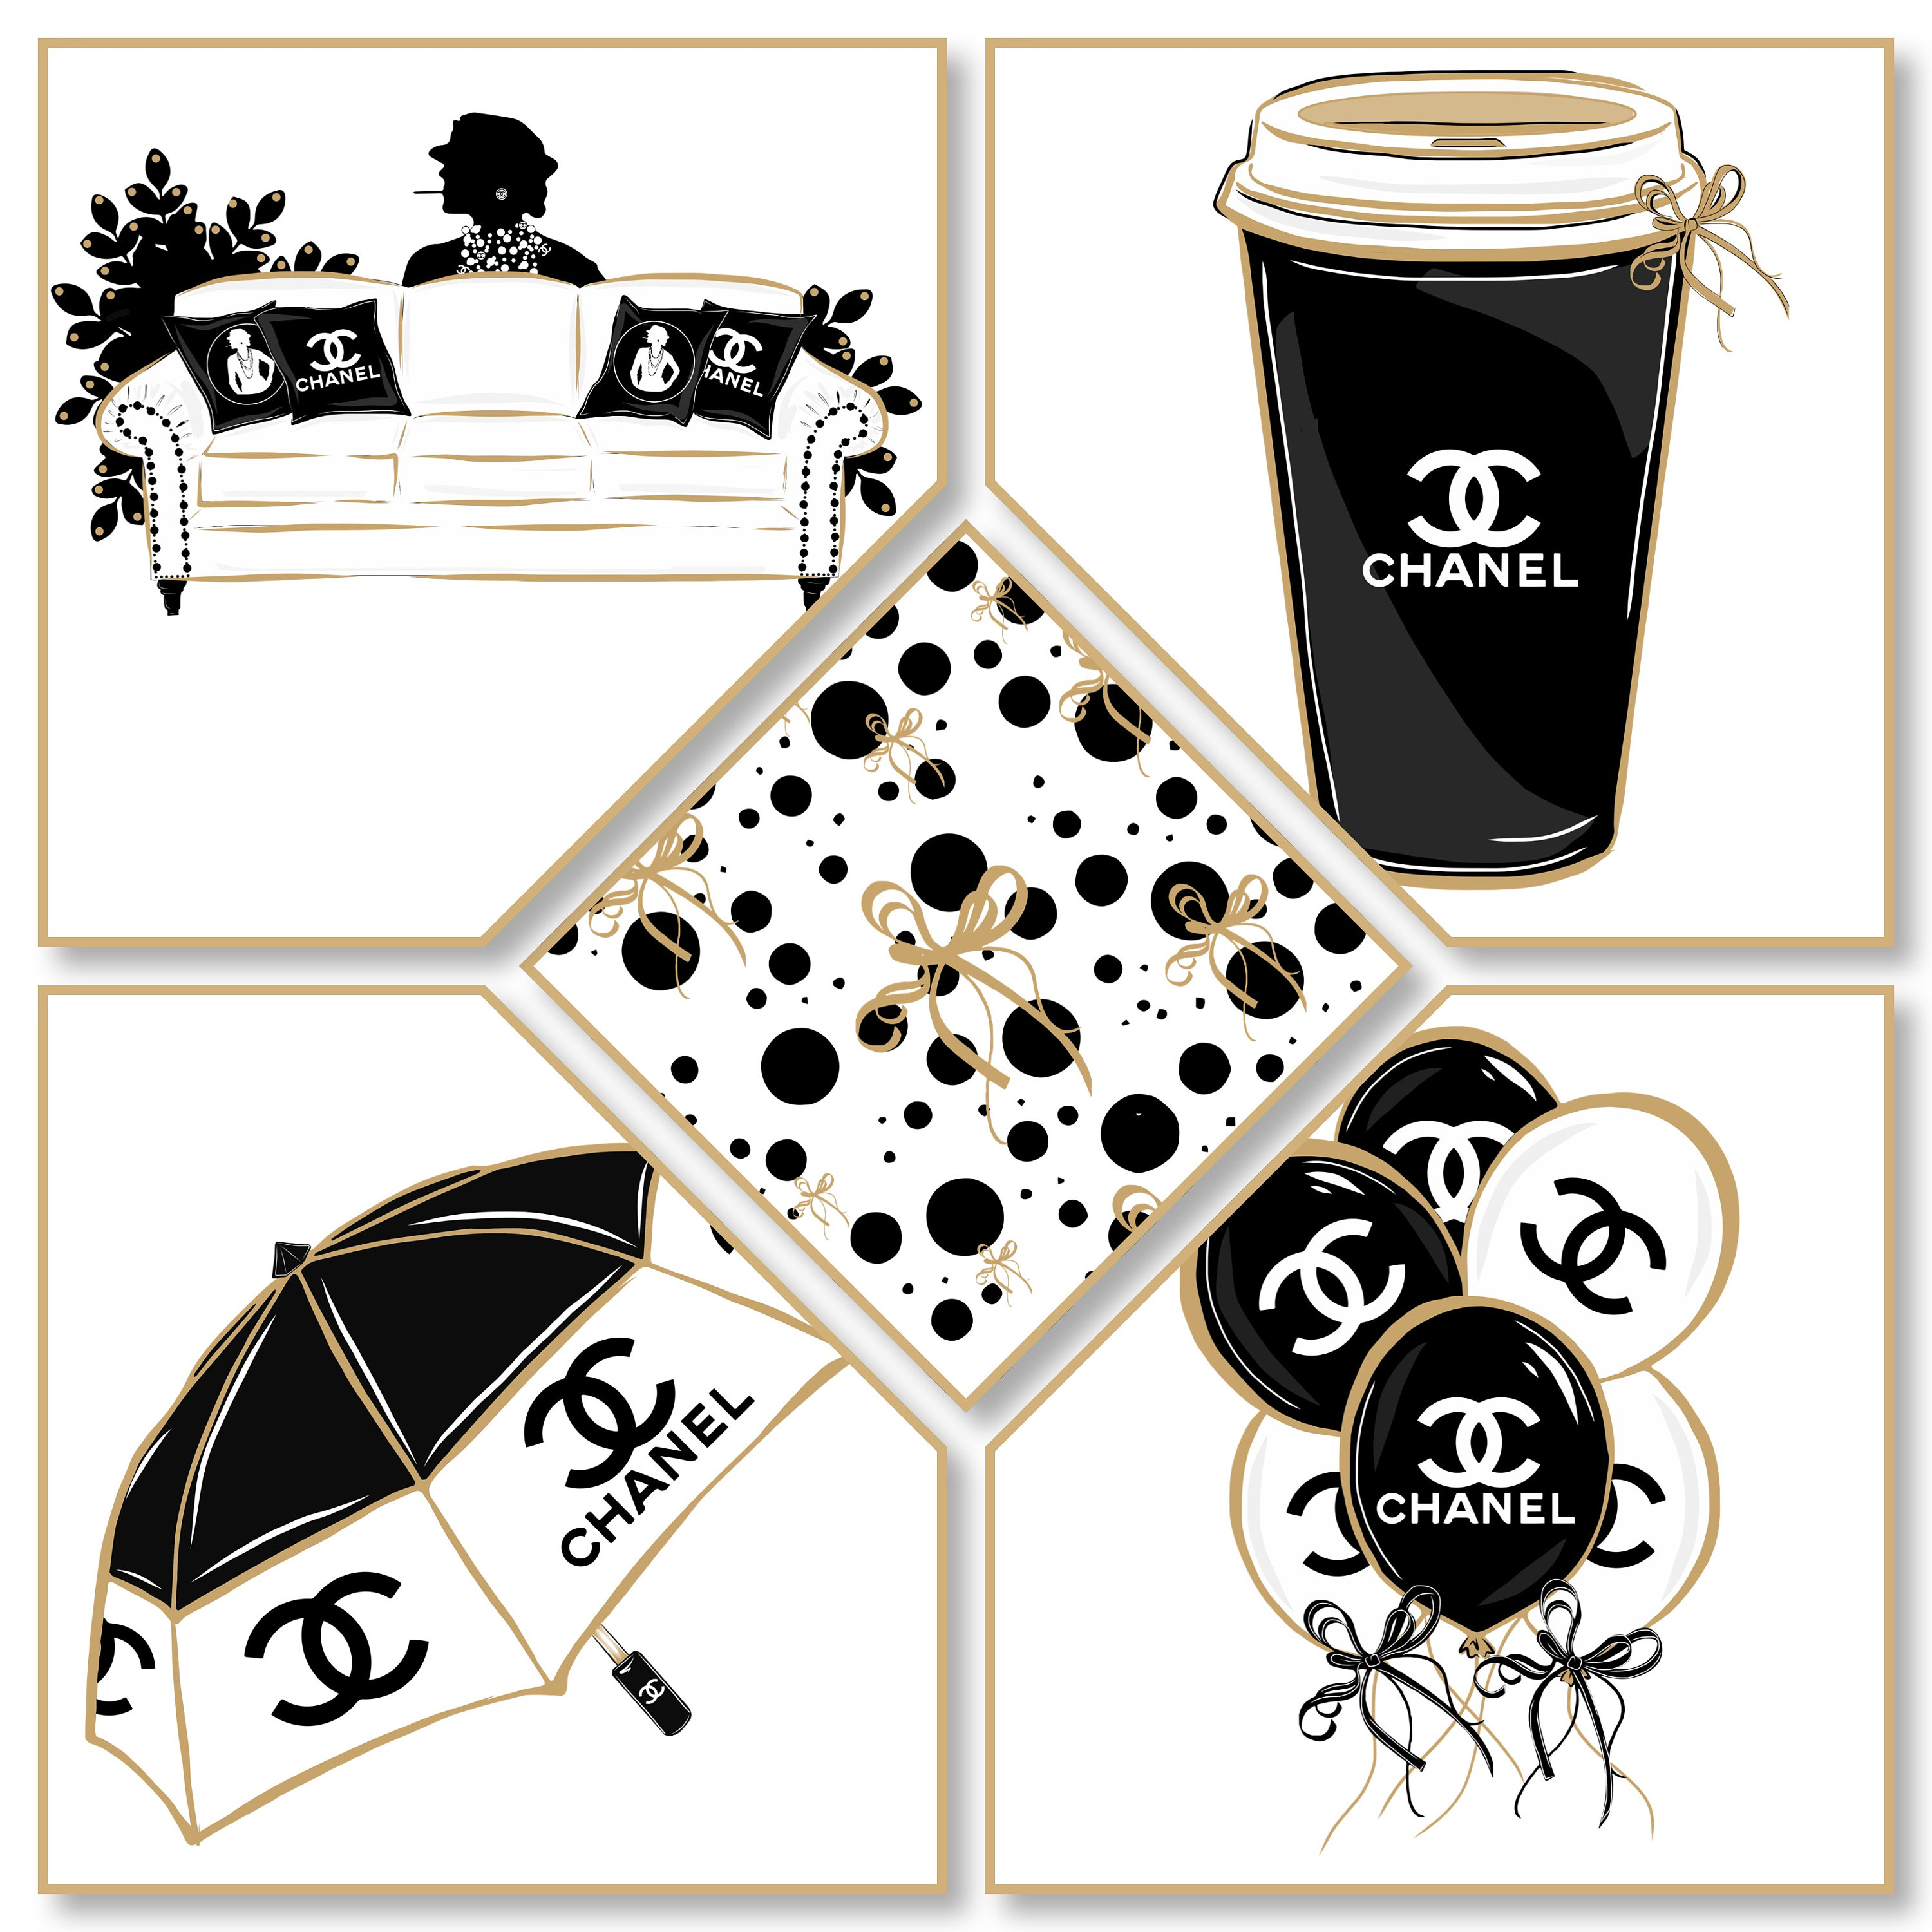 Chanel clipart name Download JUST clipartgirl Instant chanel